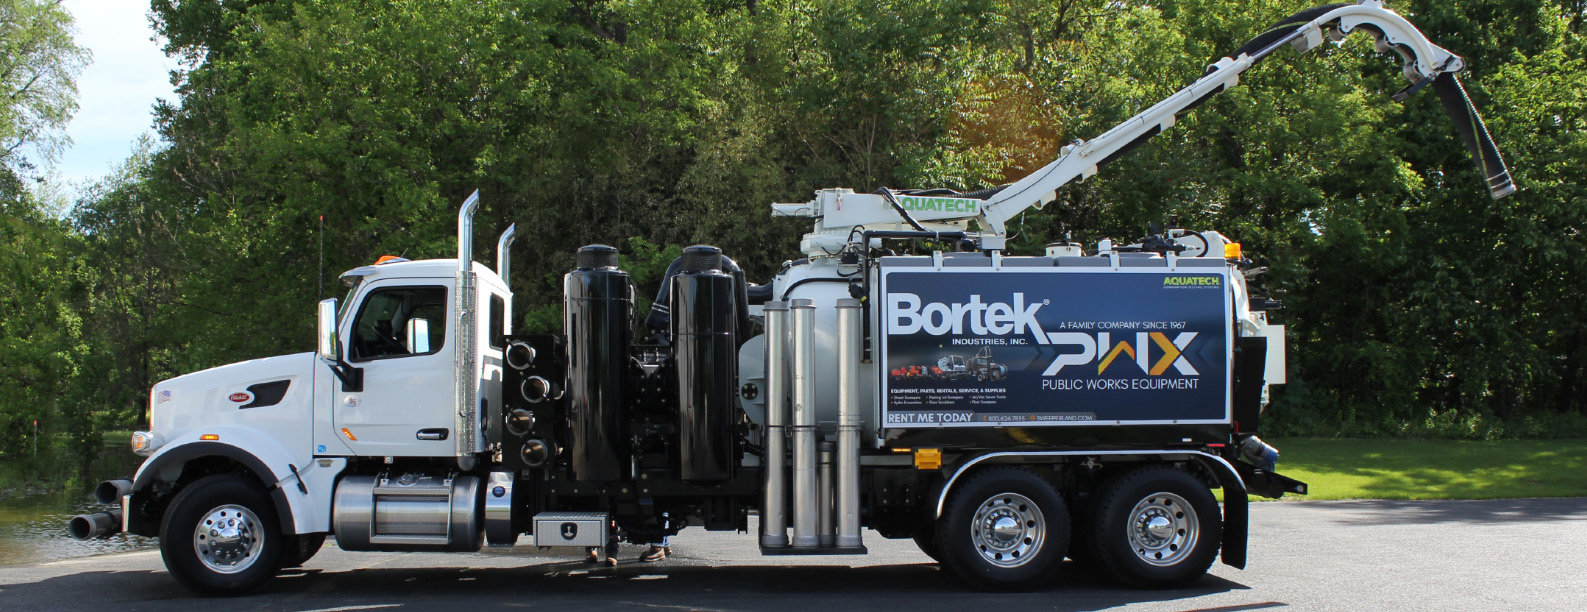 Bortek Sewer Jet/Vac Rental in West Virginia